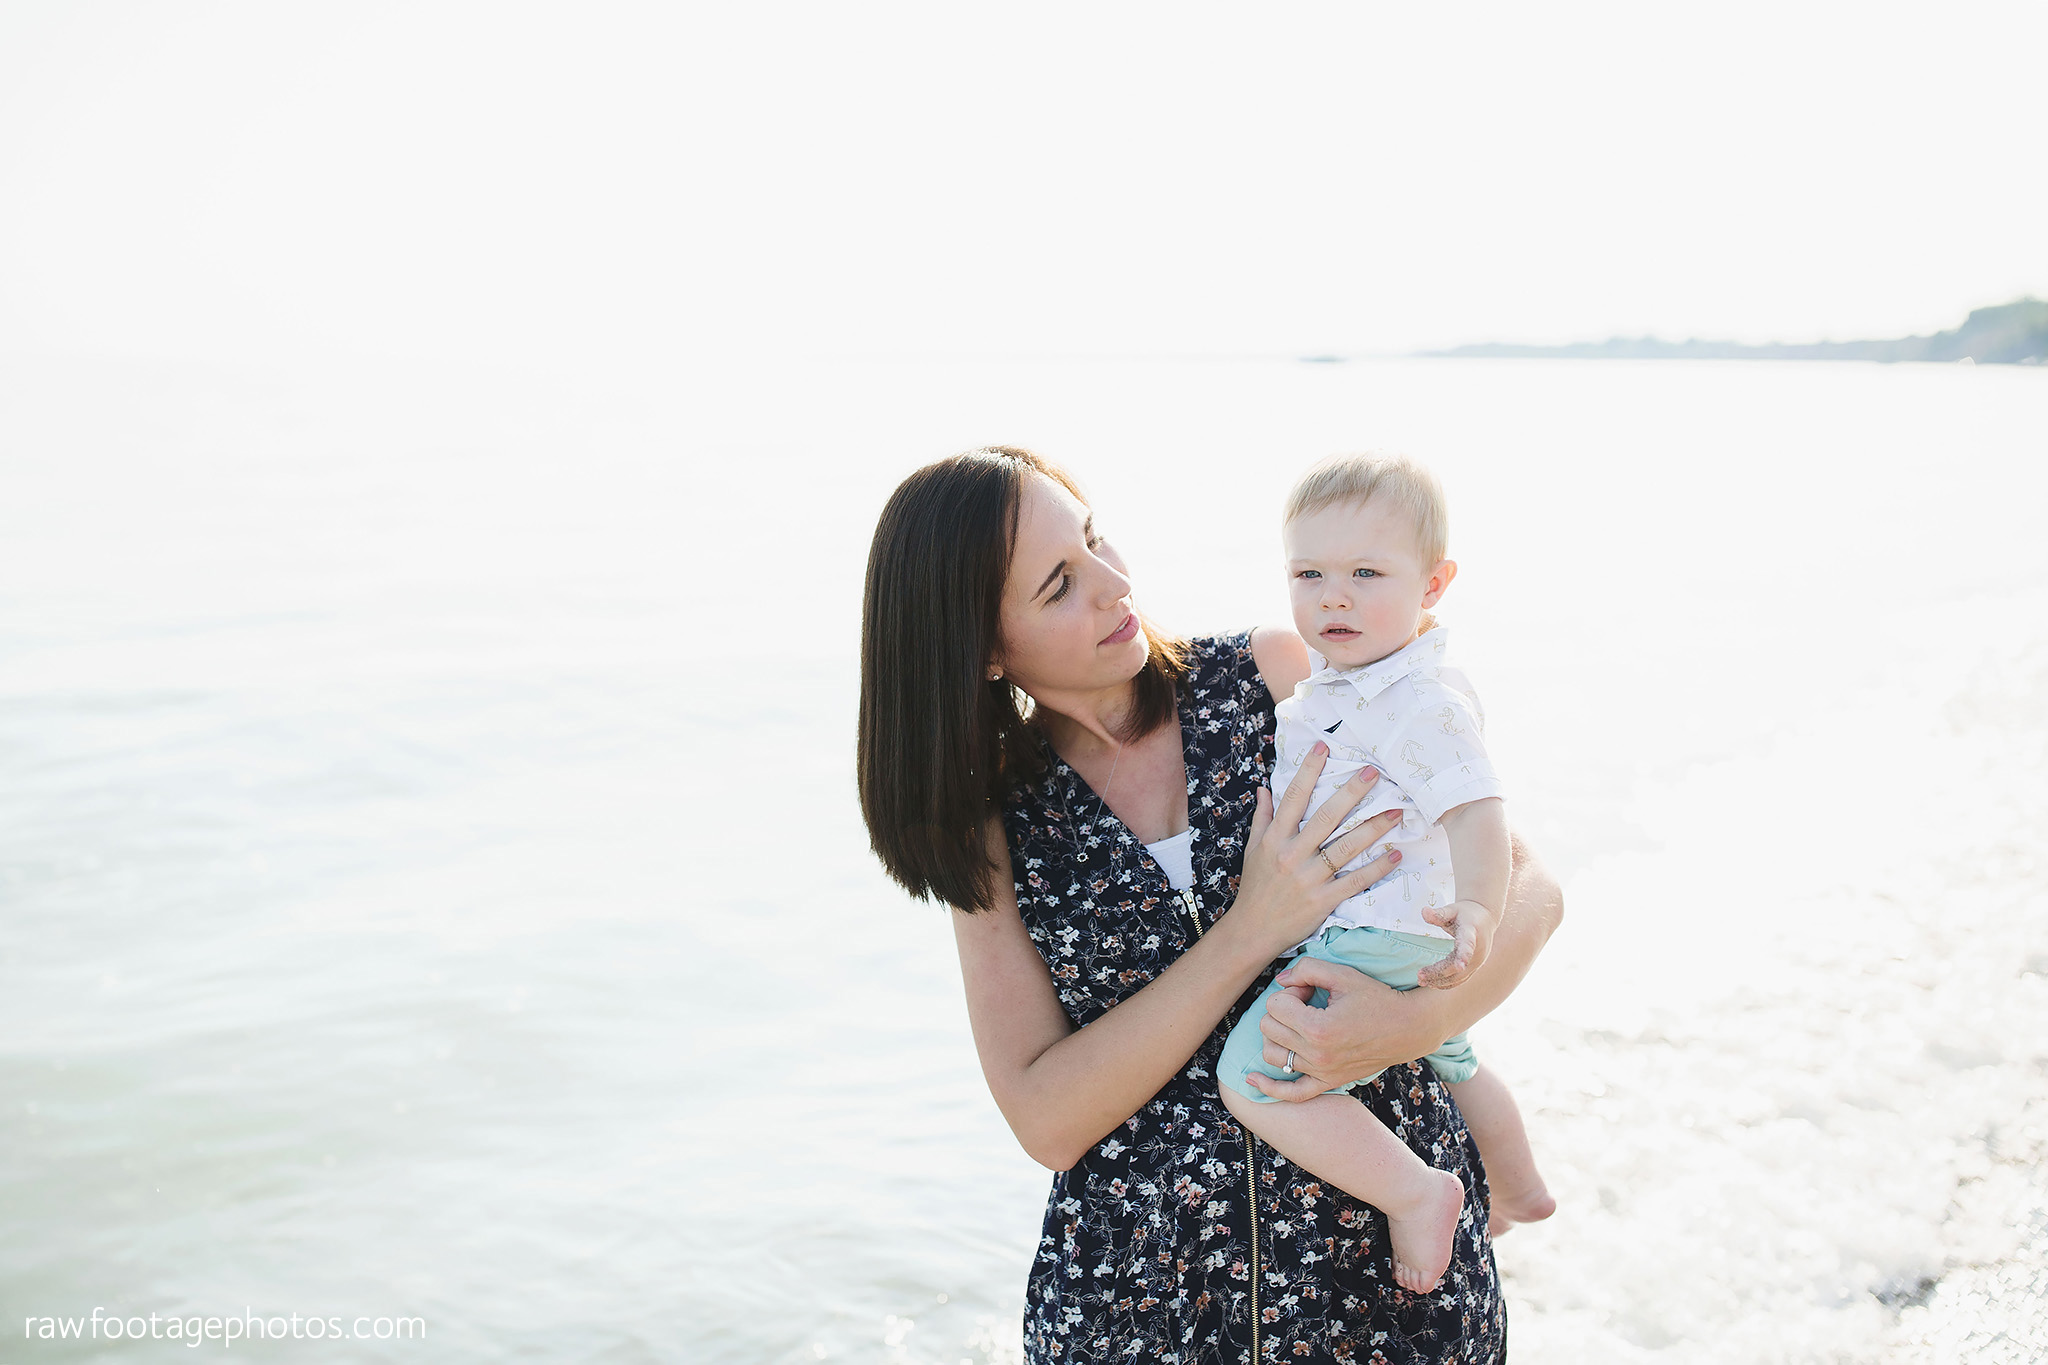 london_ontario_family_photographer-beach_minis-port_stanley_beach-raw_footage_photography006.jpg